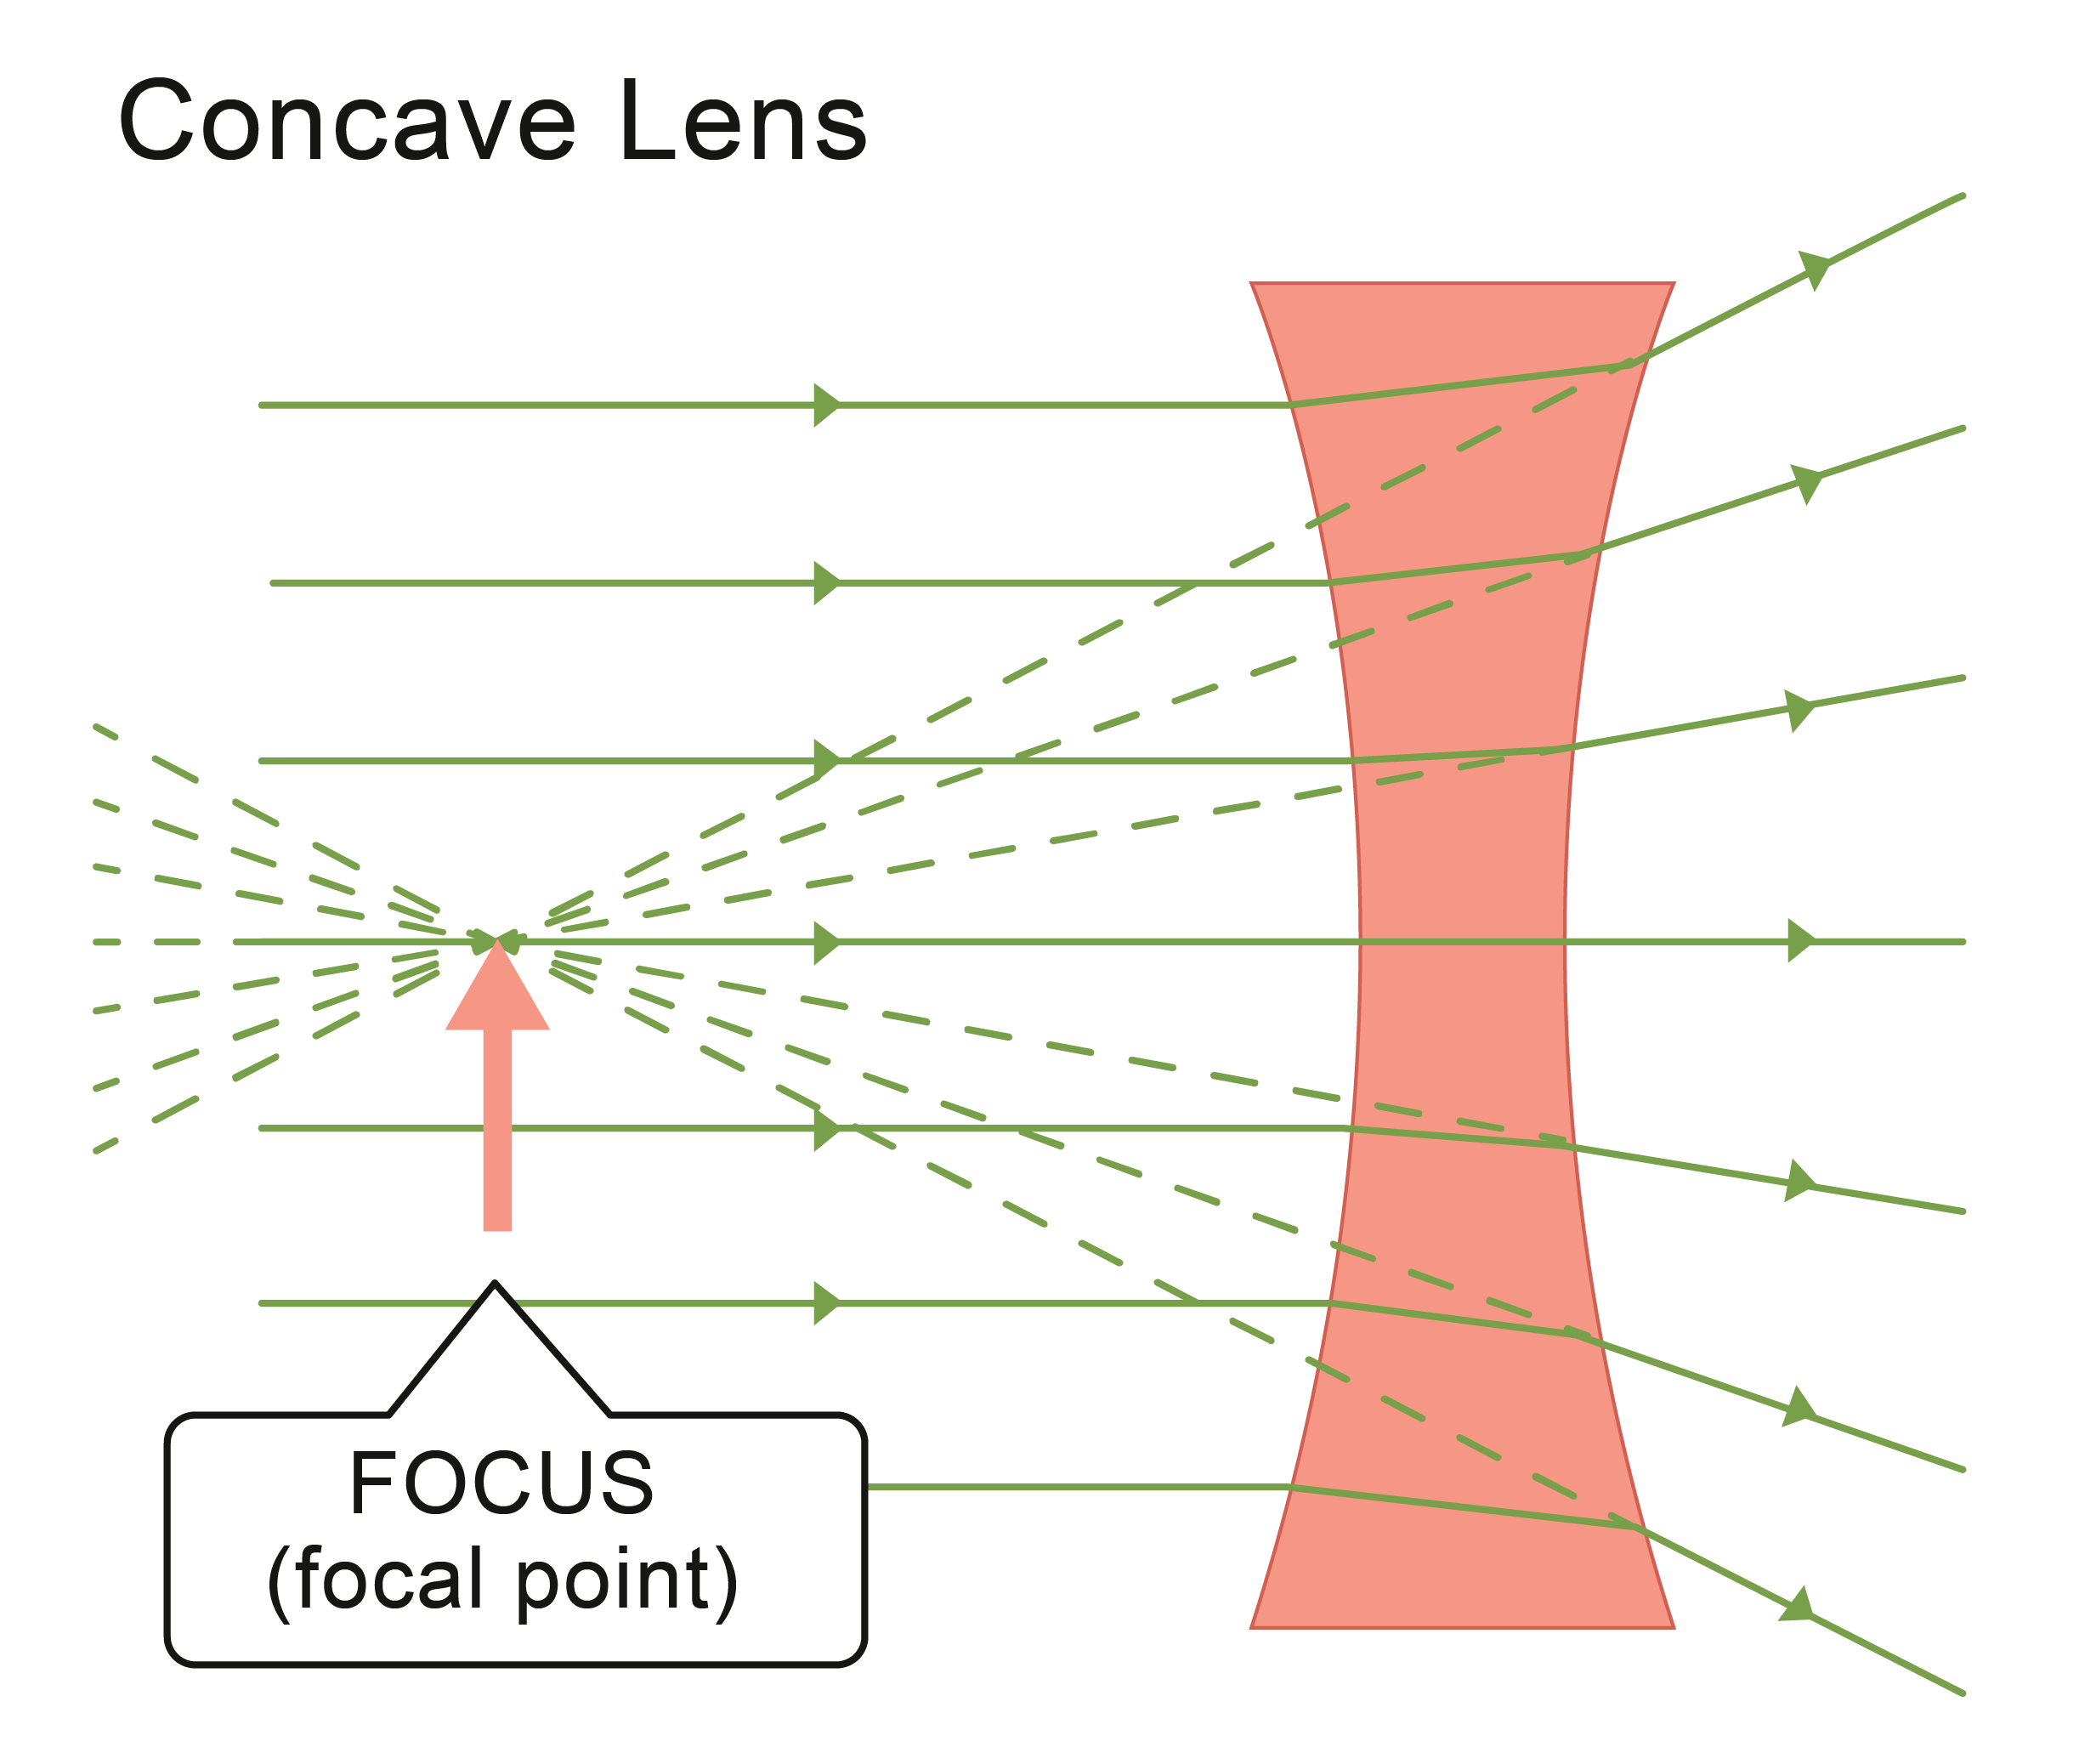 Concave lens refracting